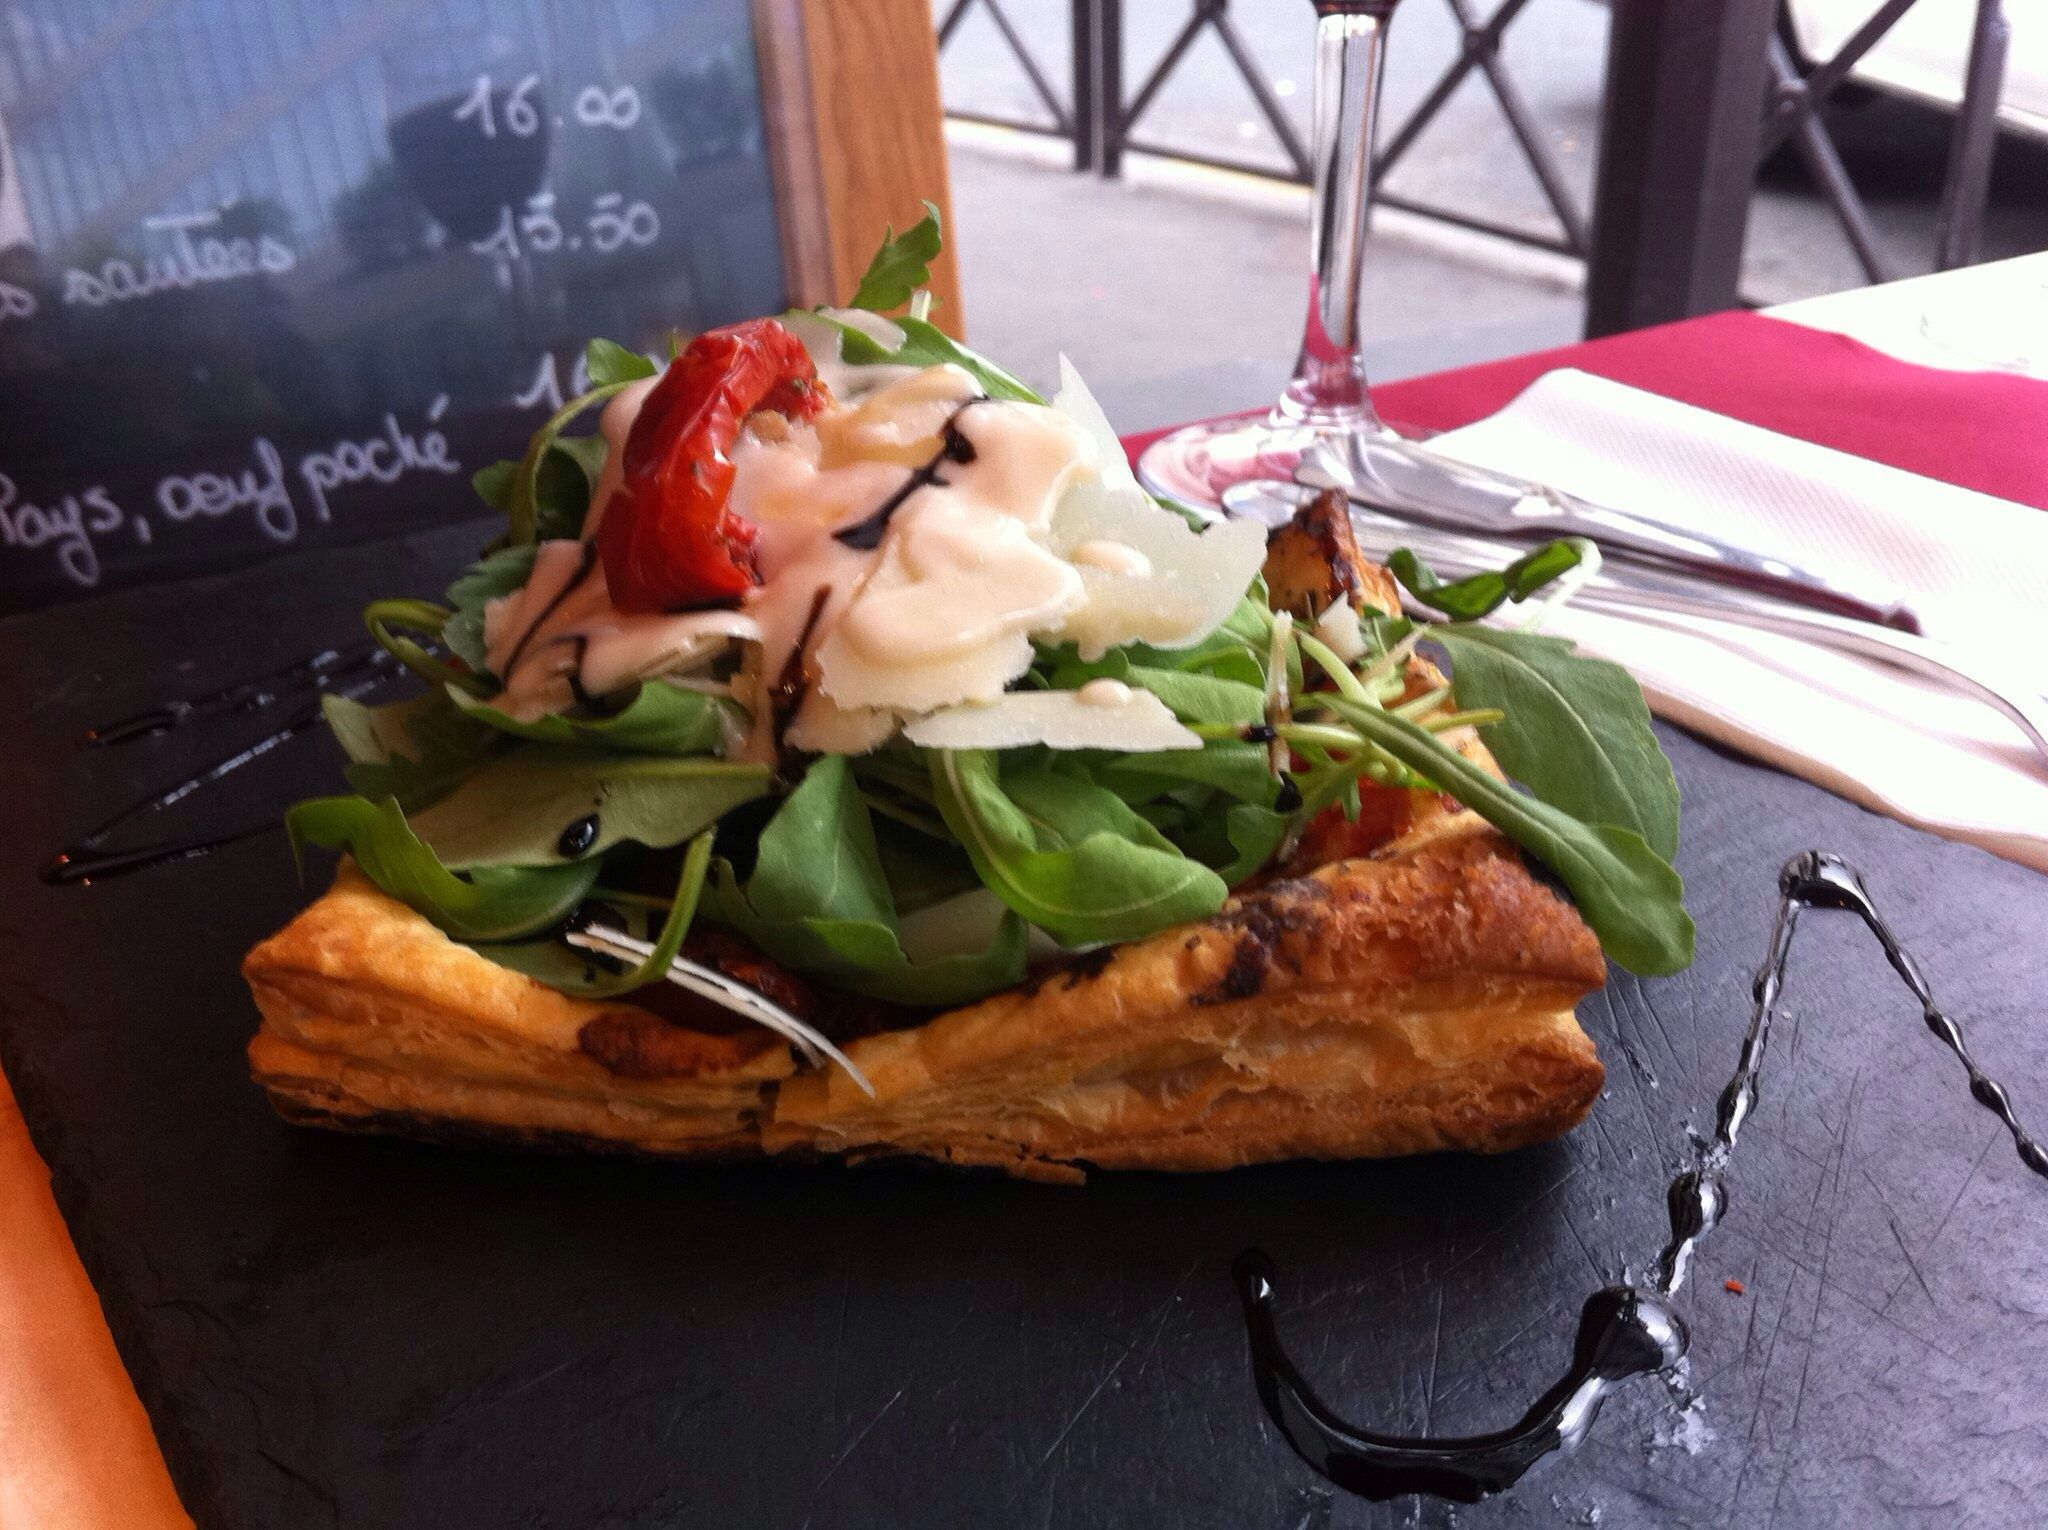 Tomato and Parmesan tart topped with aragula